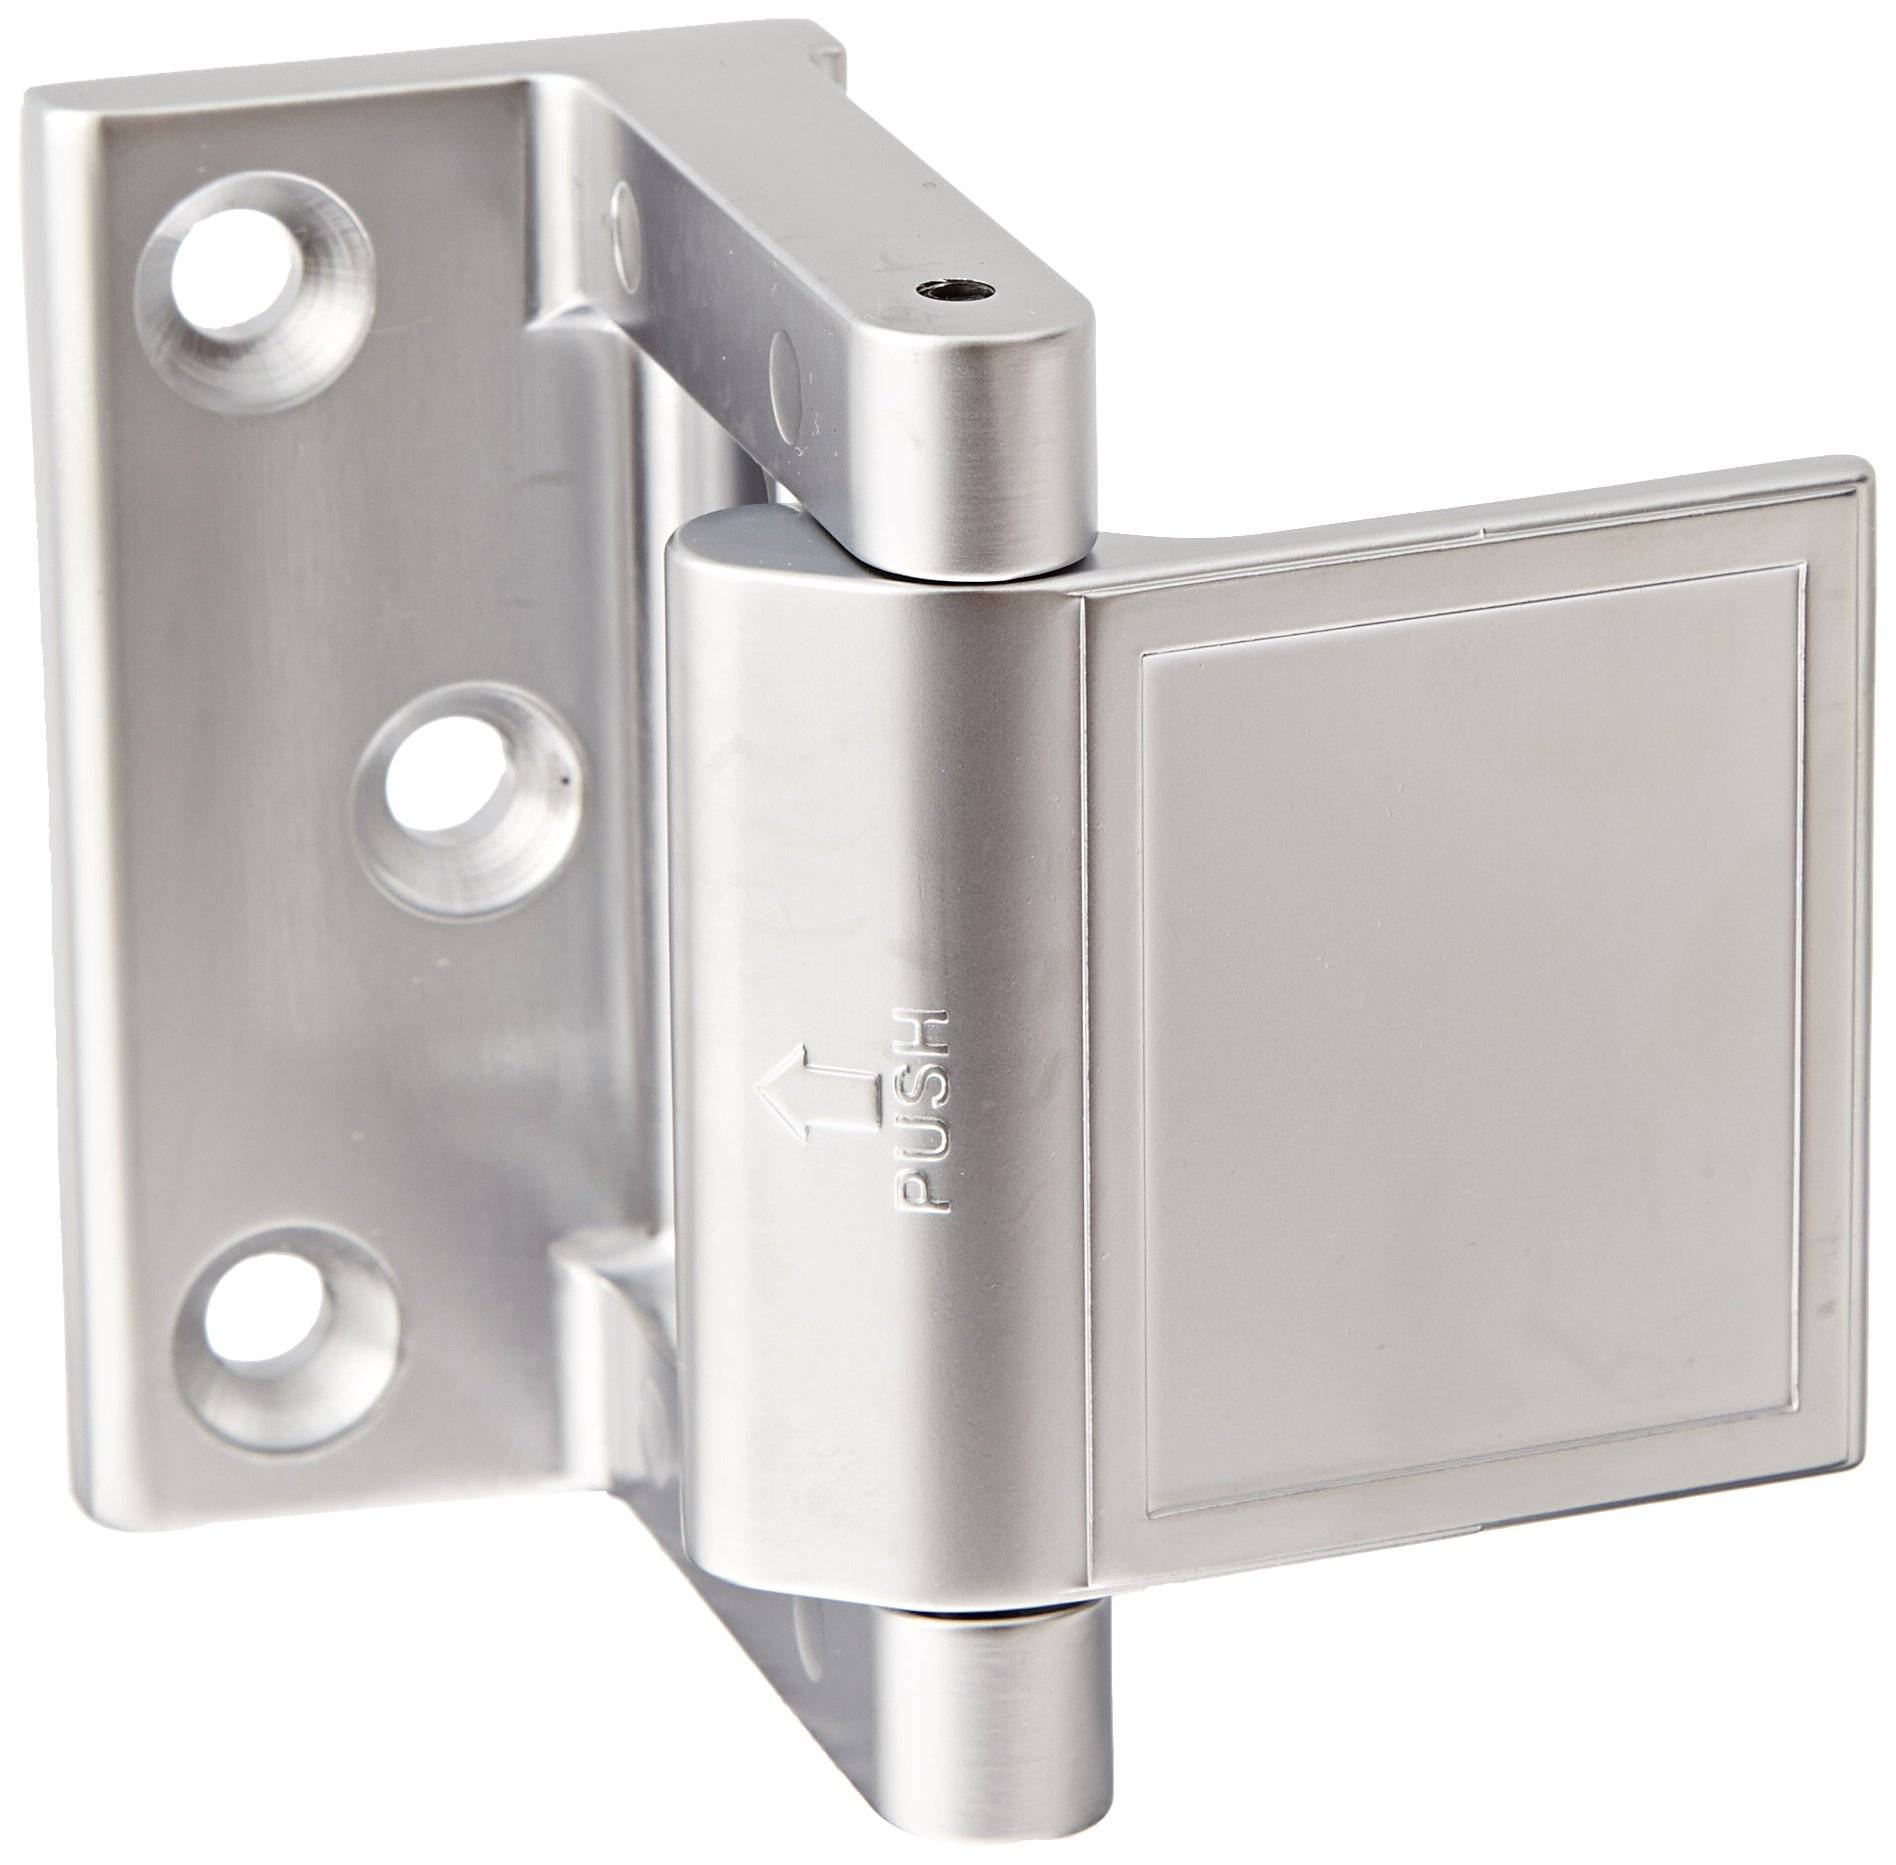 Rockwood PDL.15 Zinc Die Cast Privacy Door Latch, 1-1/2'' Width x 2-13/64'' Length, Satin Nickel Plated Clear Coated Finish